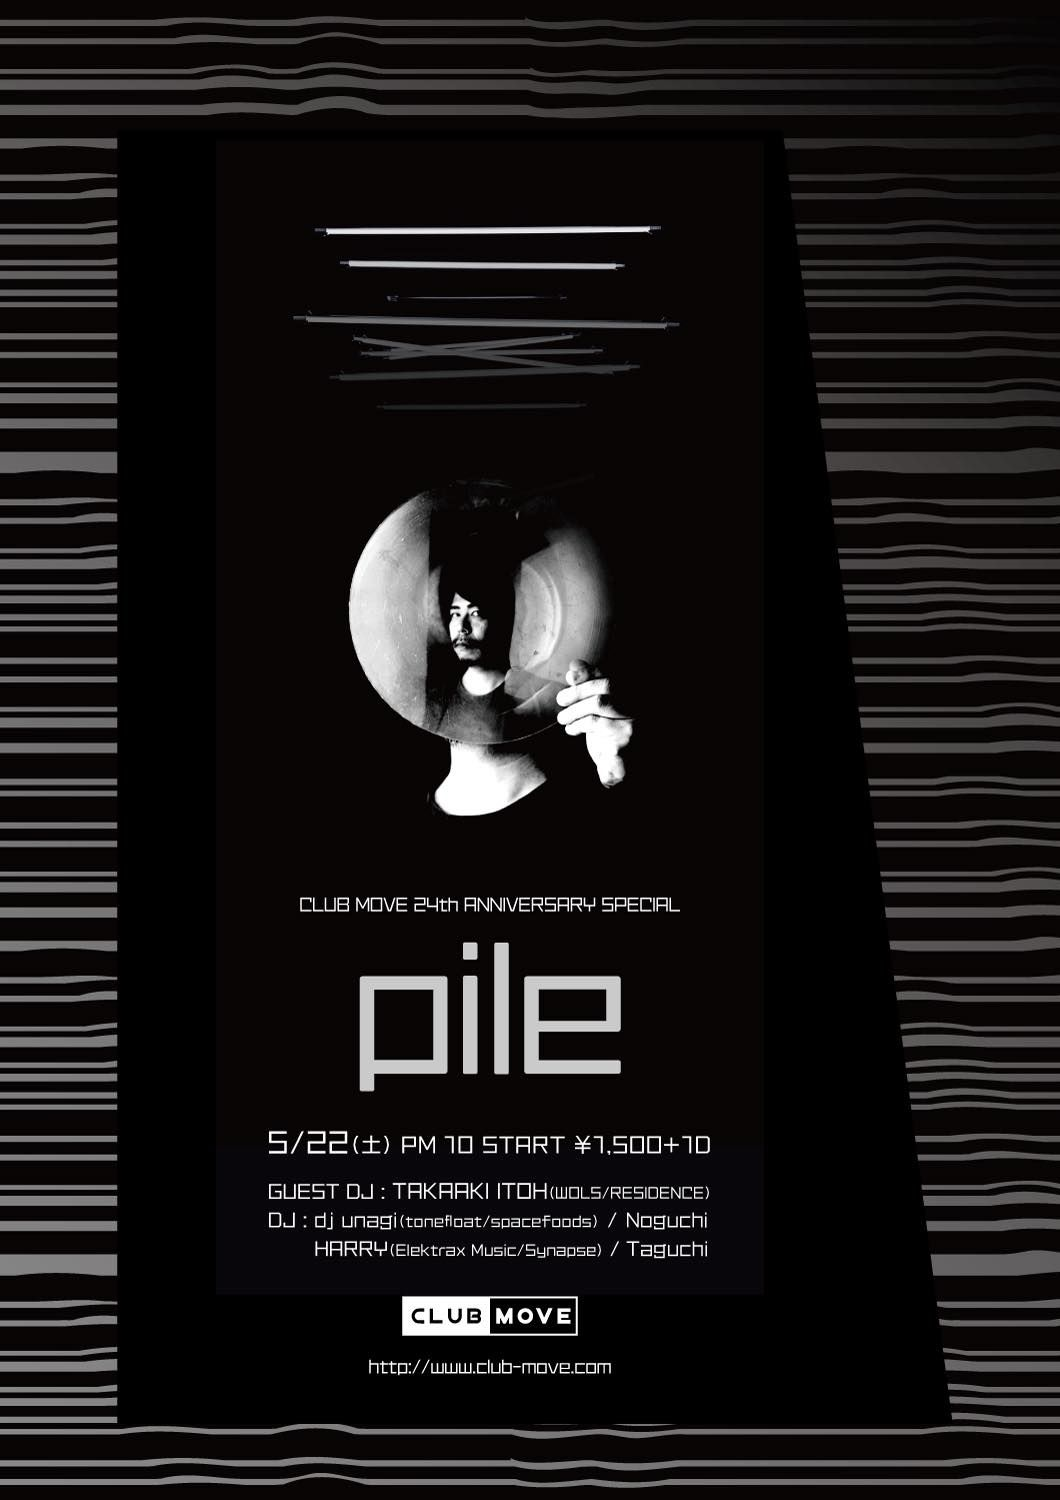 ~CLUB MOVE 24th ANNIVERSARY SPECIAL~ pile